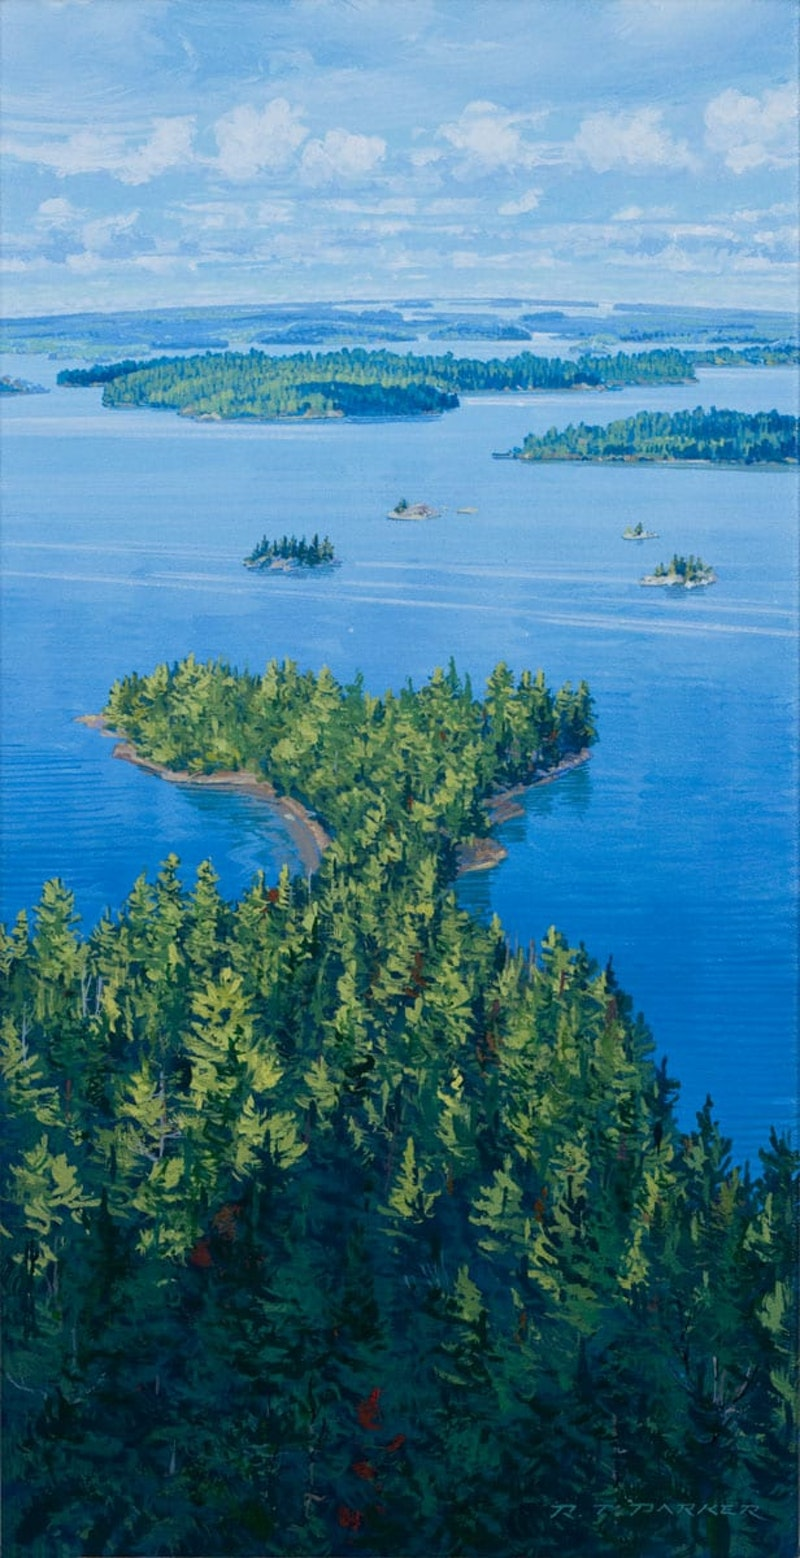 Walter J. Phillips Island from Lunnys Island Image 1